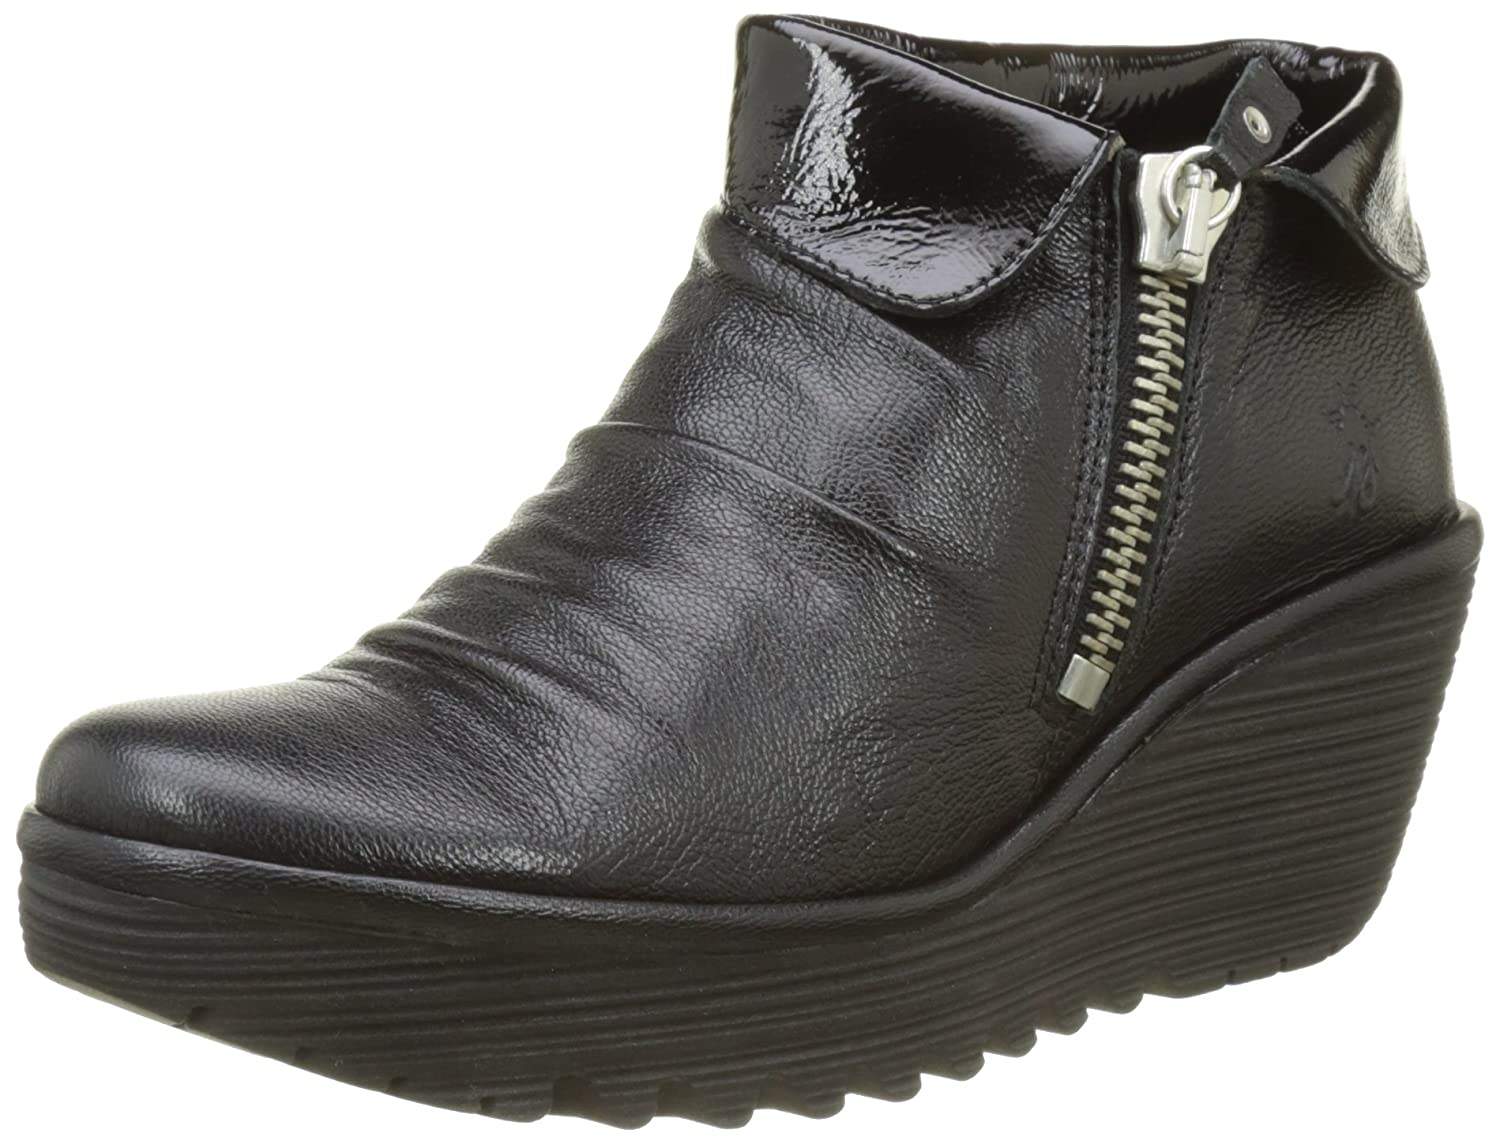 FLY London Women's (9-9.5 Yoxi755fly Platform B06WWNYM6F 40 M EU (9-9.5 Women's US)|Black Mousse/Luxor 4b5e72